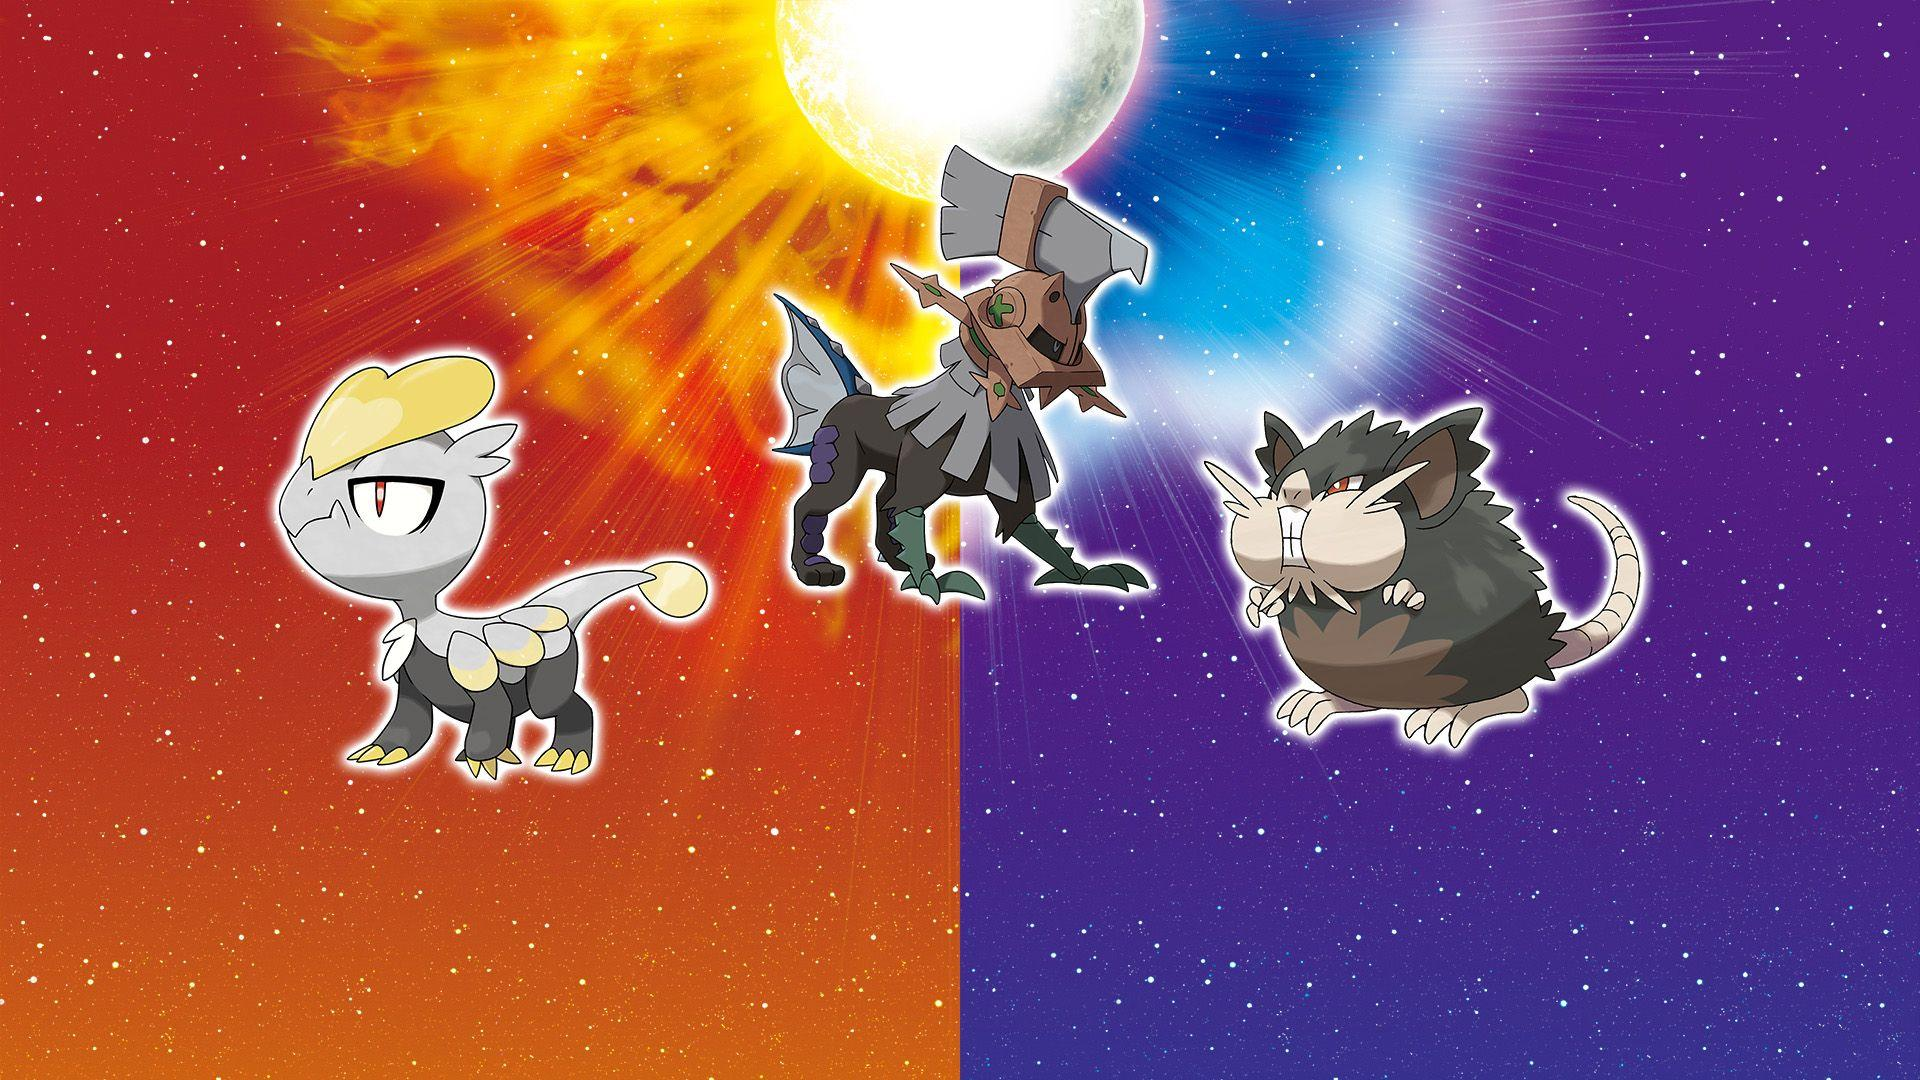 Alolan Raticate, Jangmo-o and Type: Null announced for Pokémon Sun ...